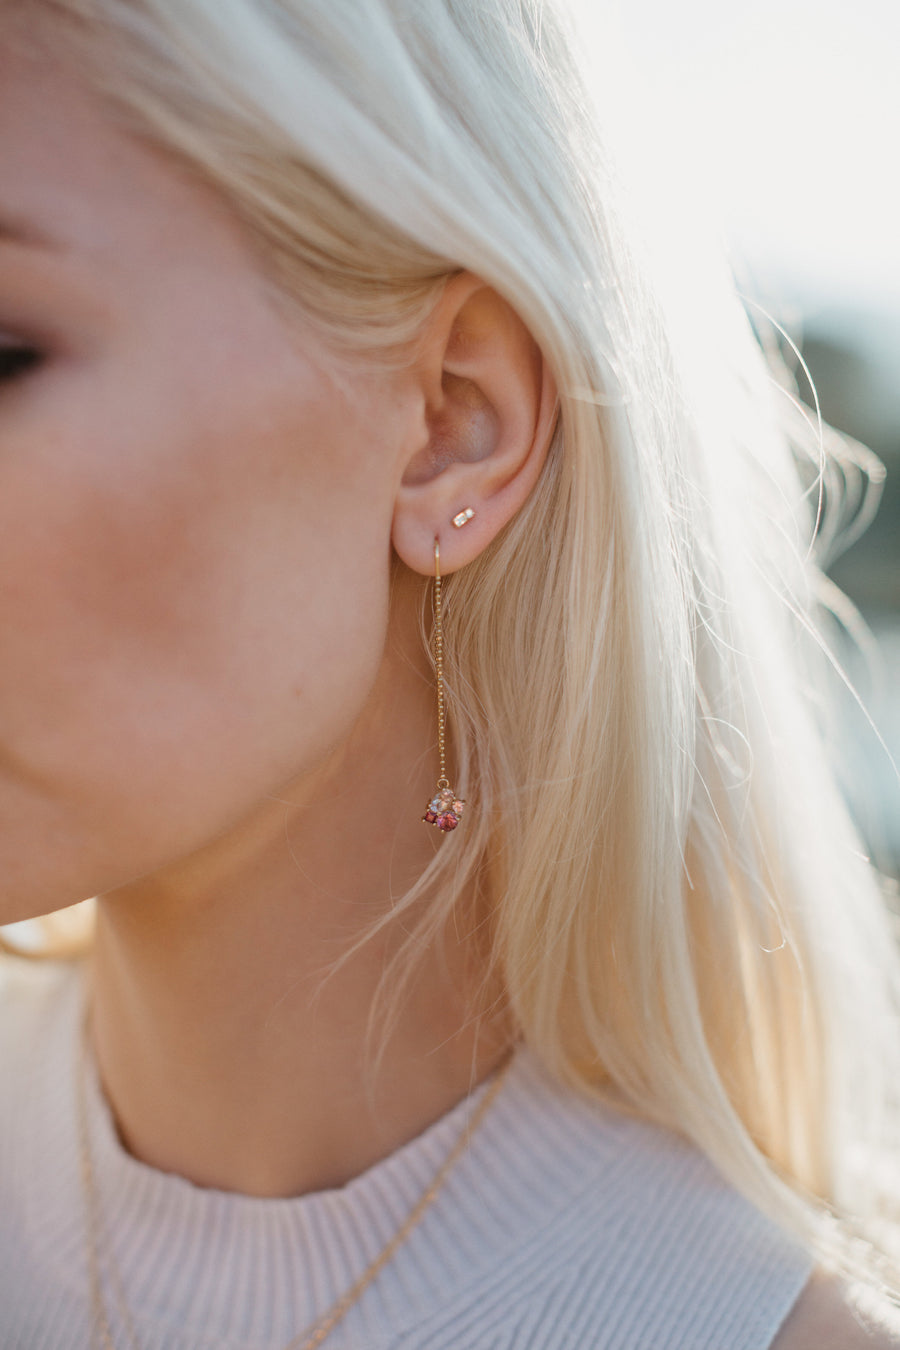 Shown here Haley is wearing the Livia Earrings with Frida Earrings.